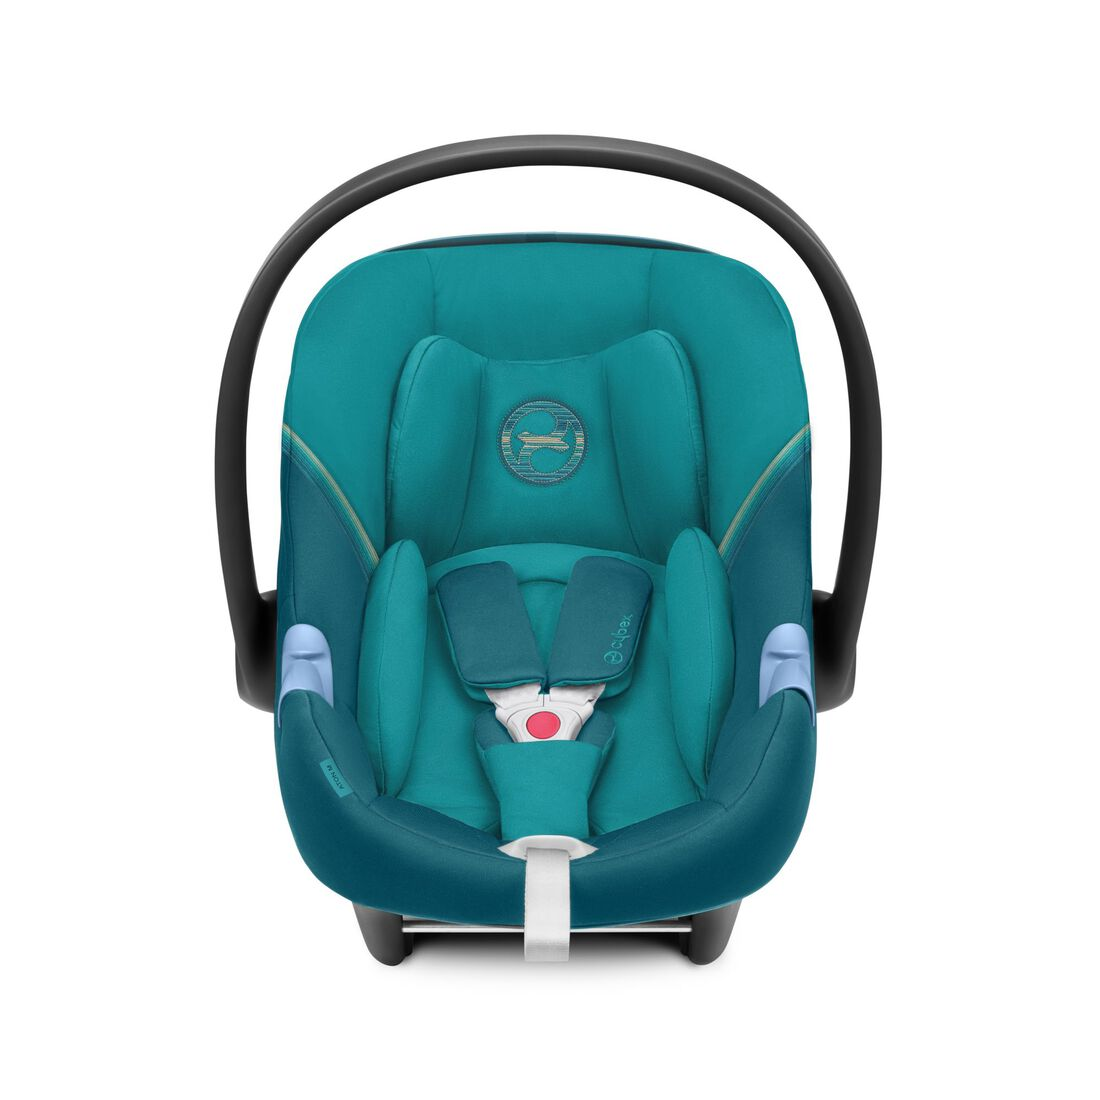 CYBEX Aton M i-Size - River Blue in River Blue large image number 2